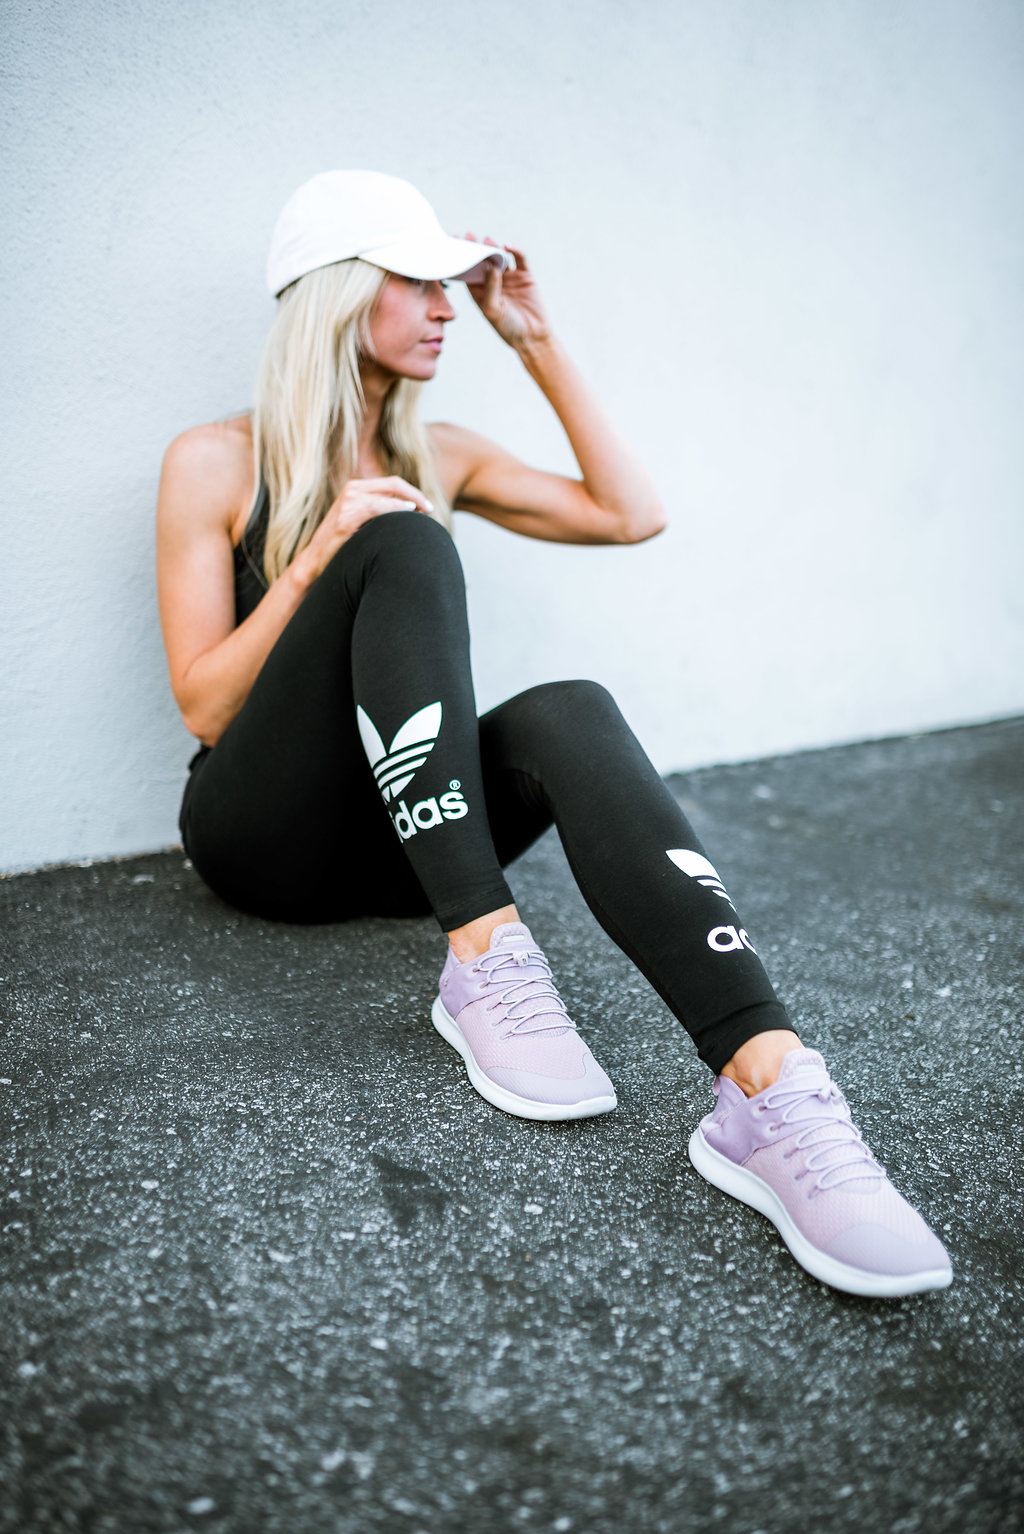 All black + lilac sneakers- workout look.